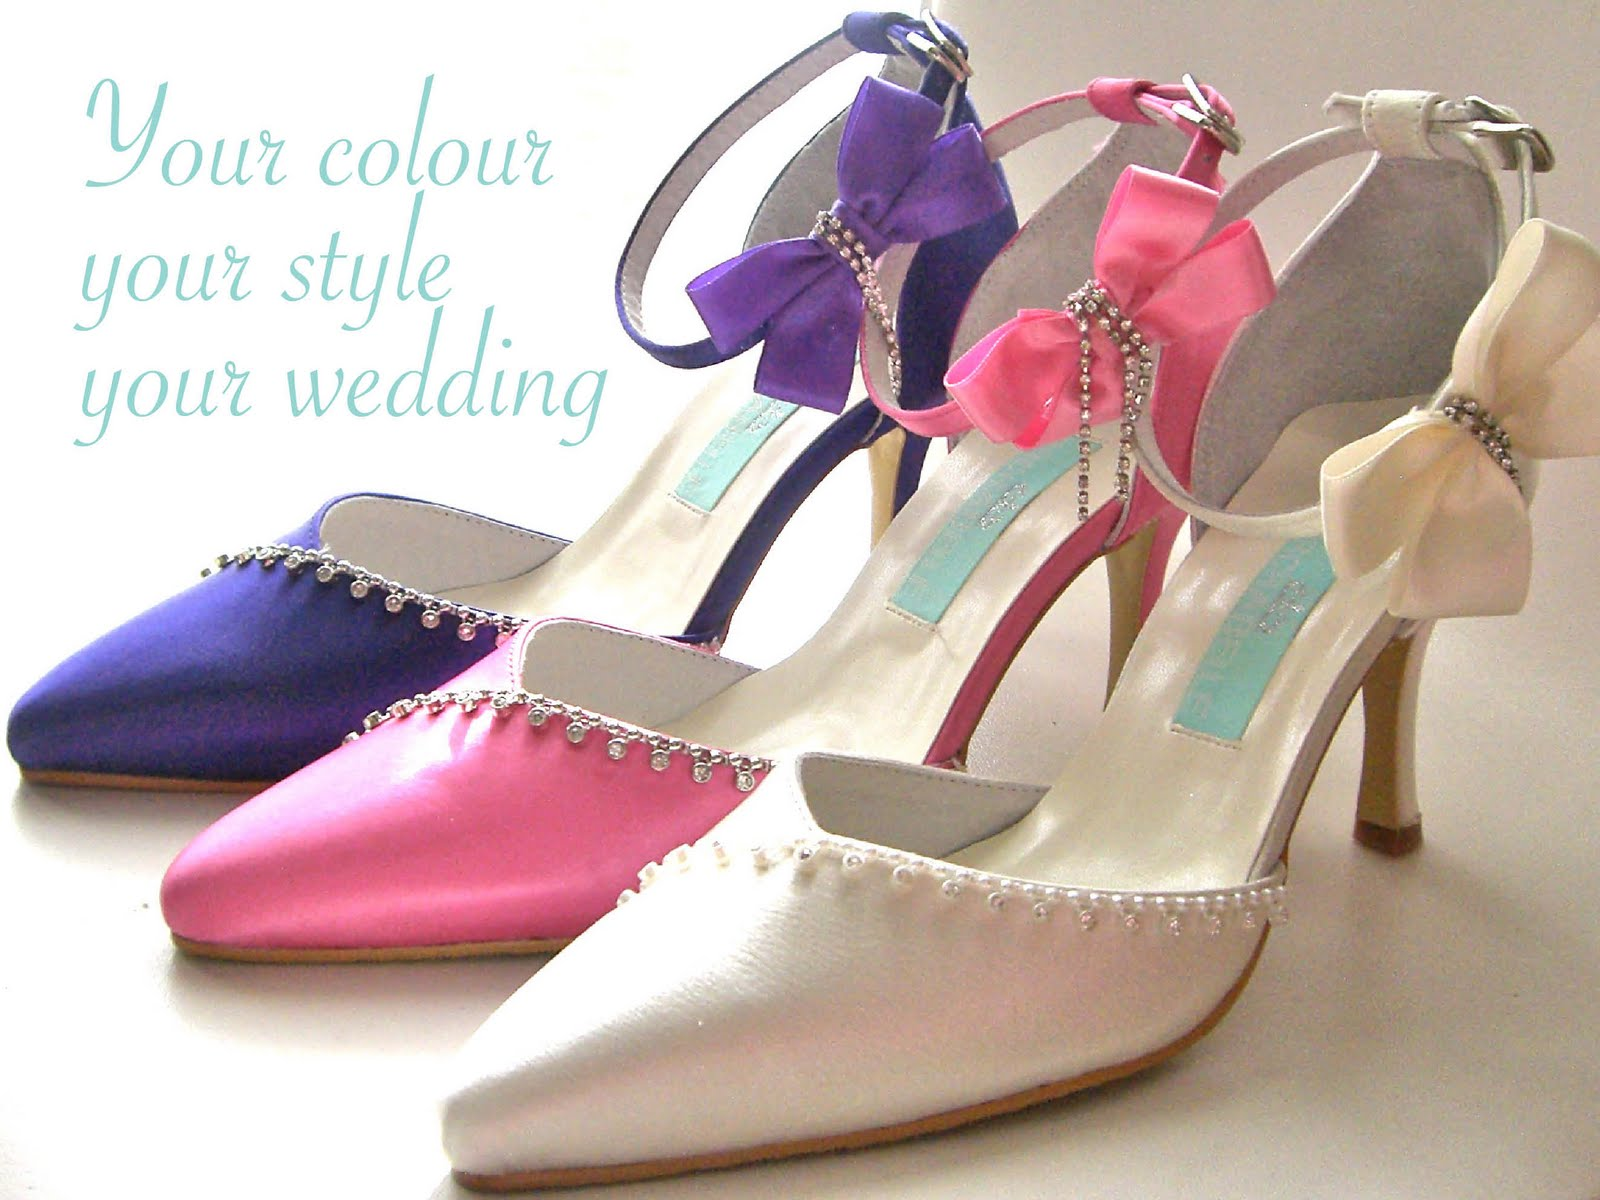 and Save Image to download the Colorful Women Wedding Shoes Wallpaper